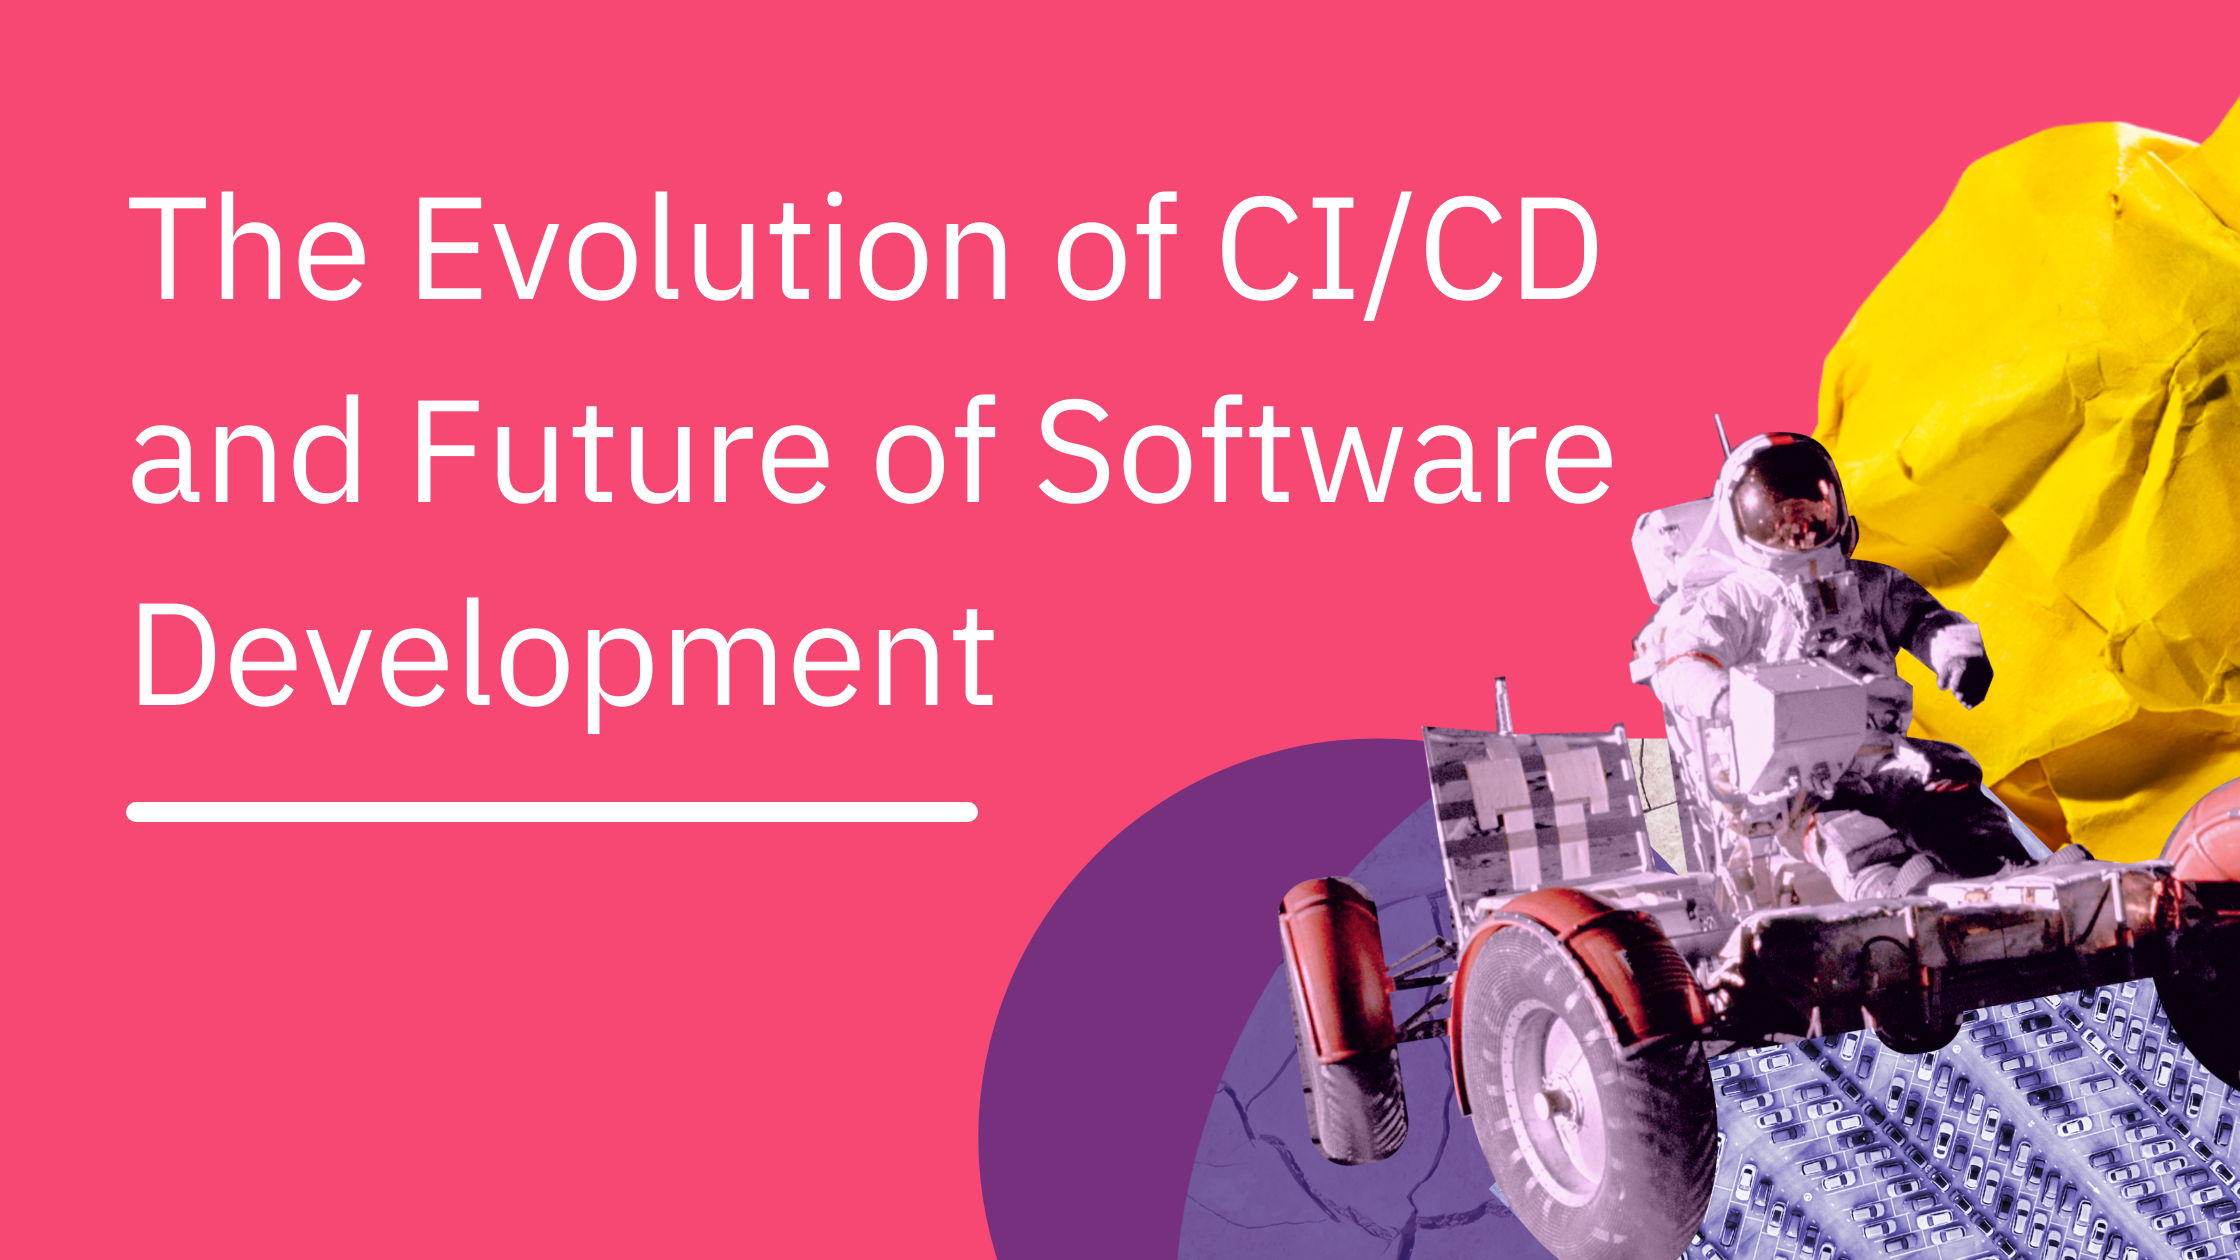 The Evolution of CI/CD and Future of Software Development